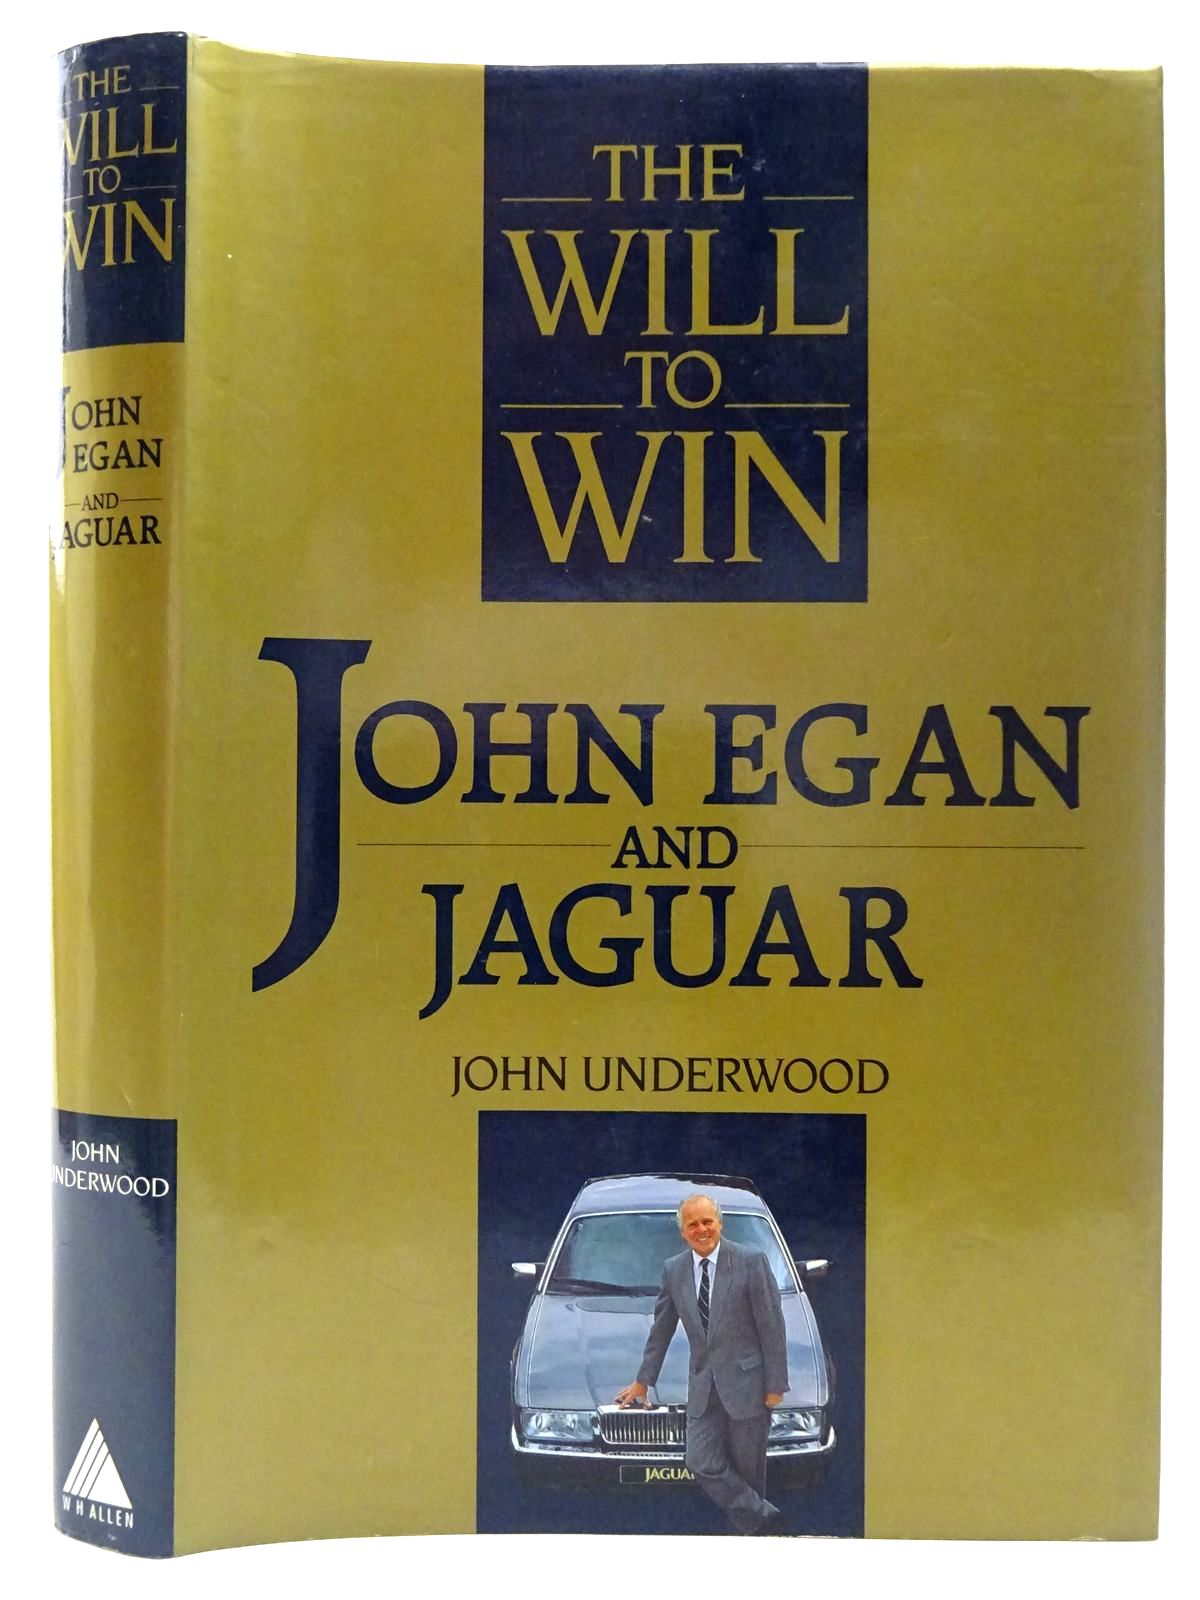 Photo of THE WILL TO WIN JOHN EGAN AND JAGUAR written by Underwood, John published by W.H. Allen (STOCK CODE: 2126838)  for sale by Stella & Rose's Books